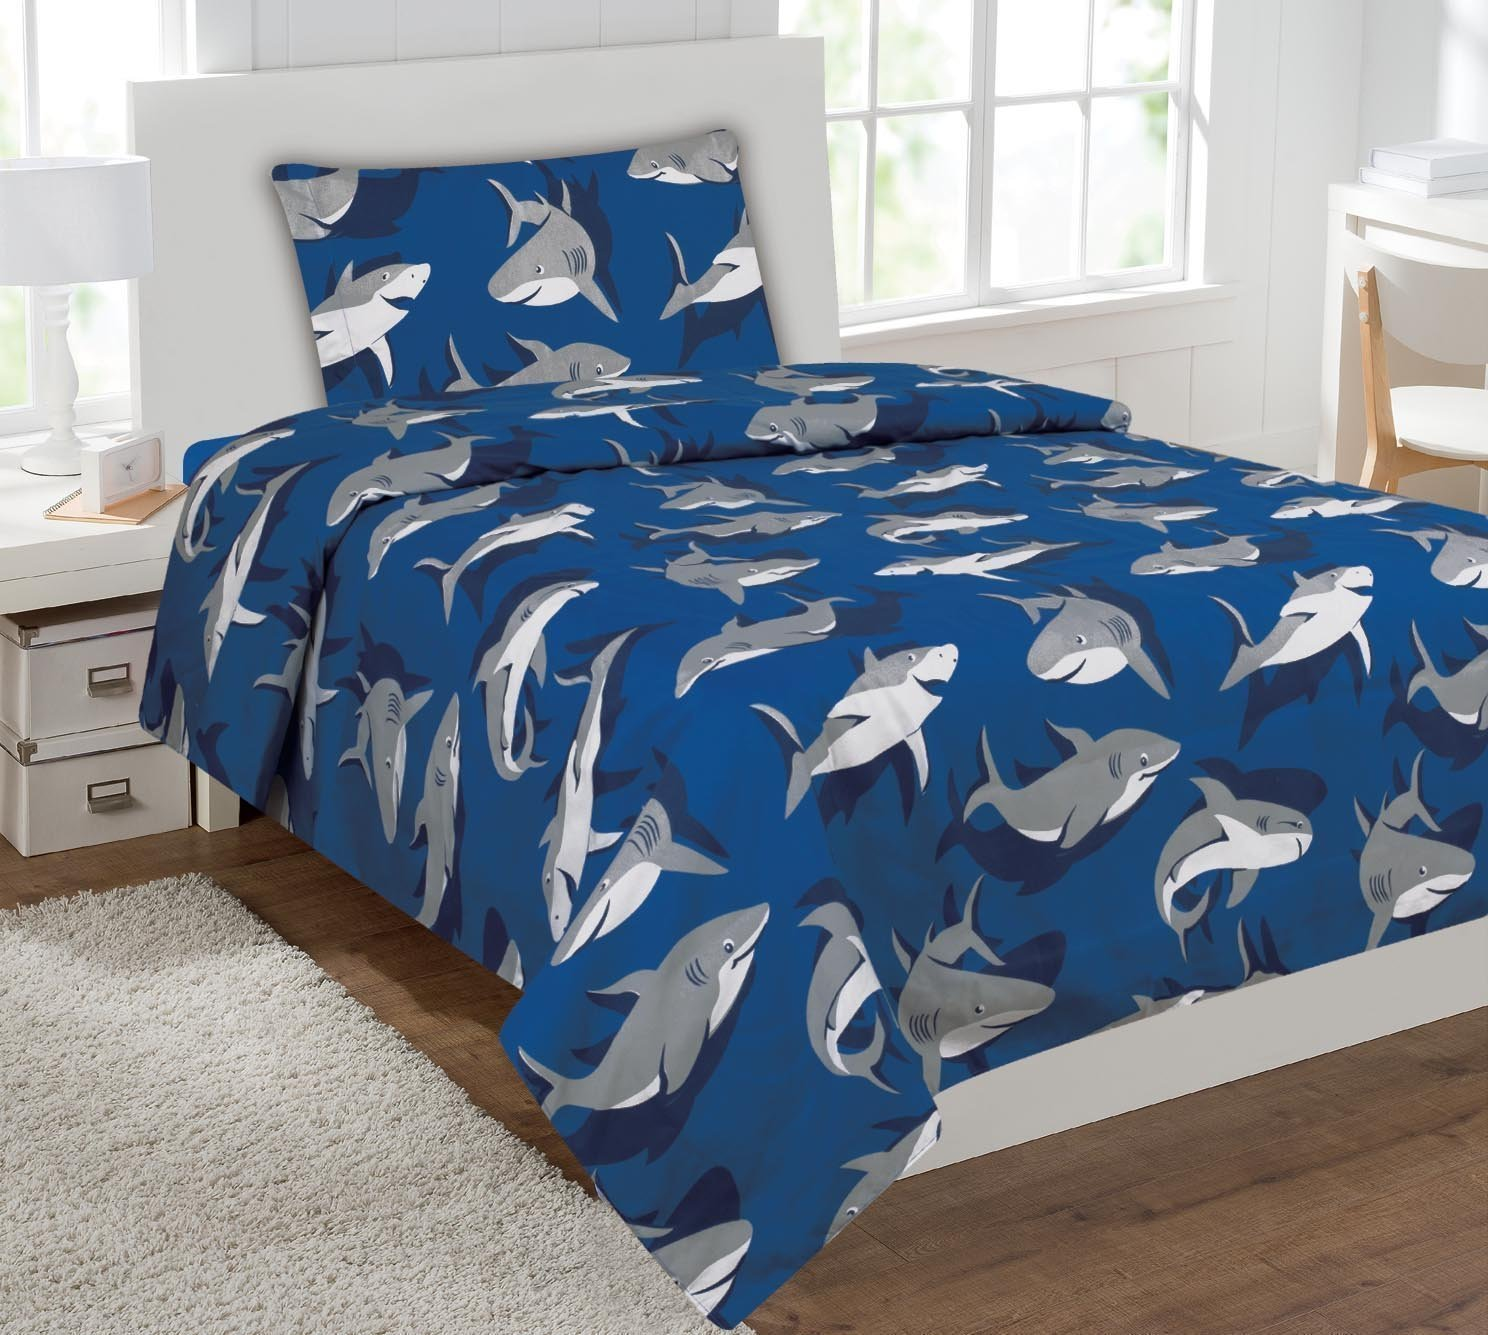 Twin Size 3pc Sheet Set for Boys Shark Light Blue Grey New